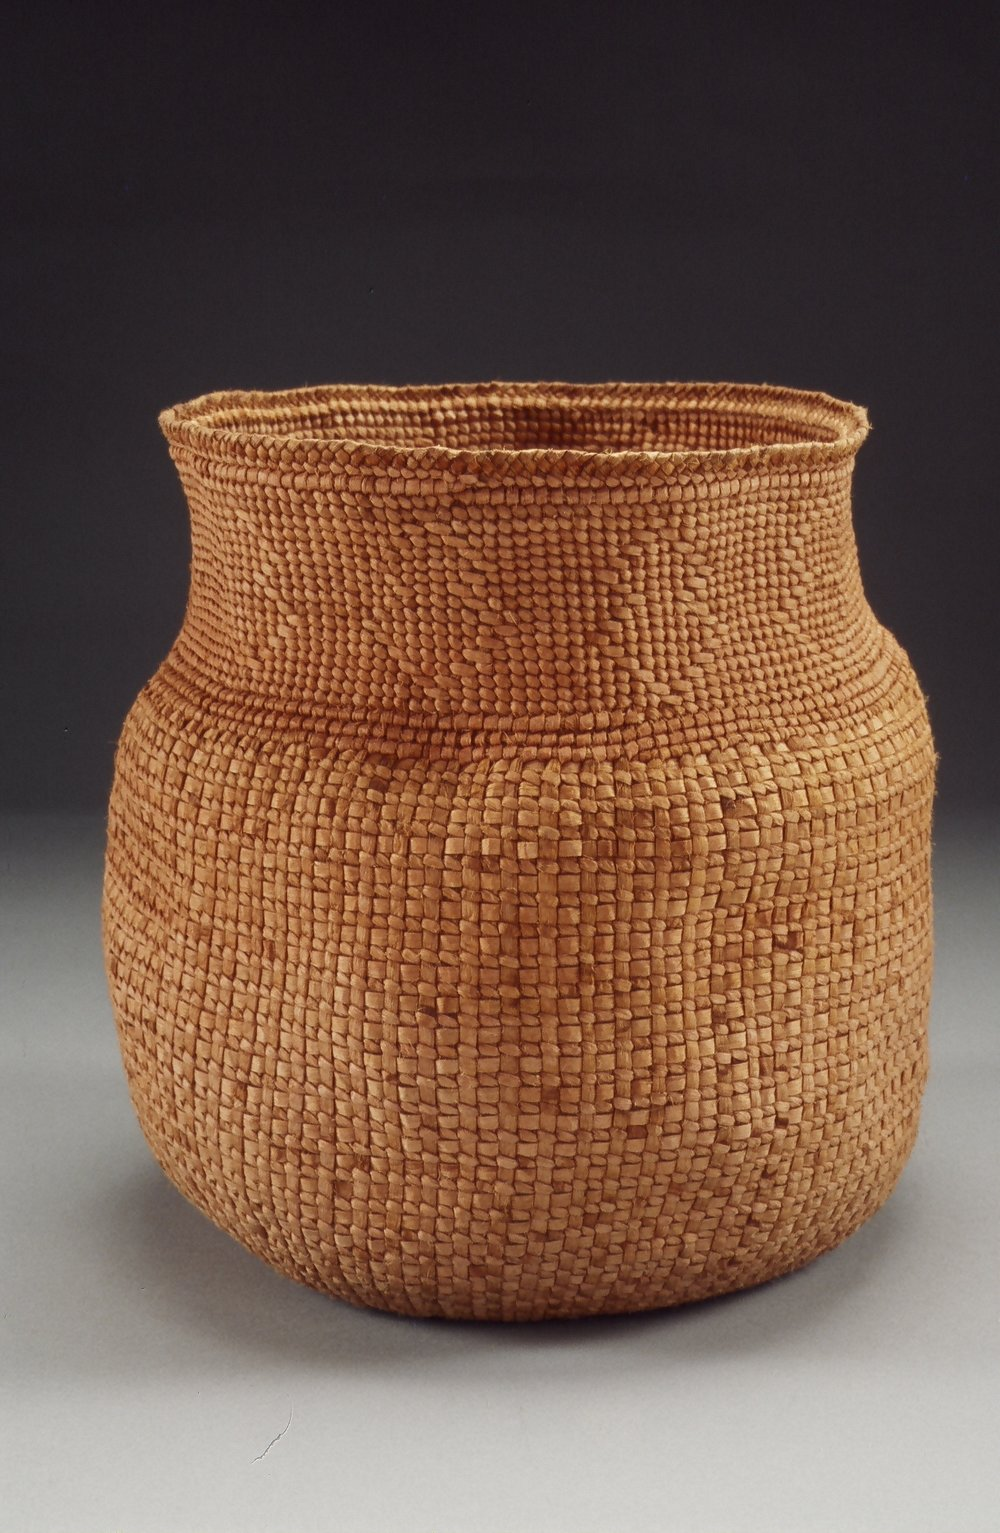 """Untitled #650"" by Jennifer Heller Zurick. 2006. Willow bark basket."